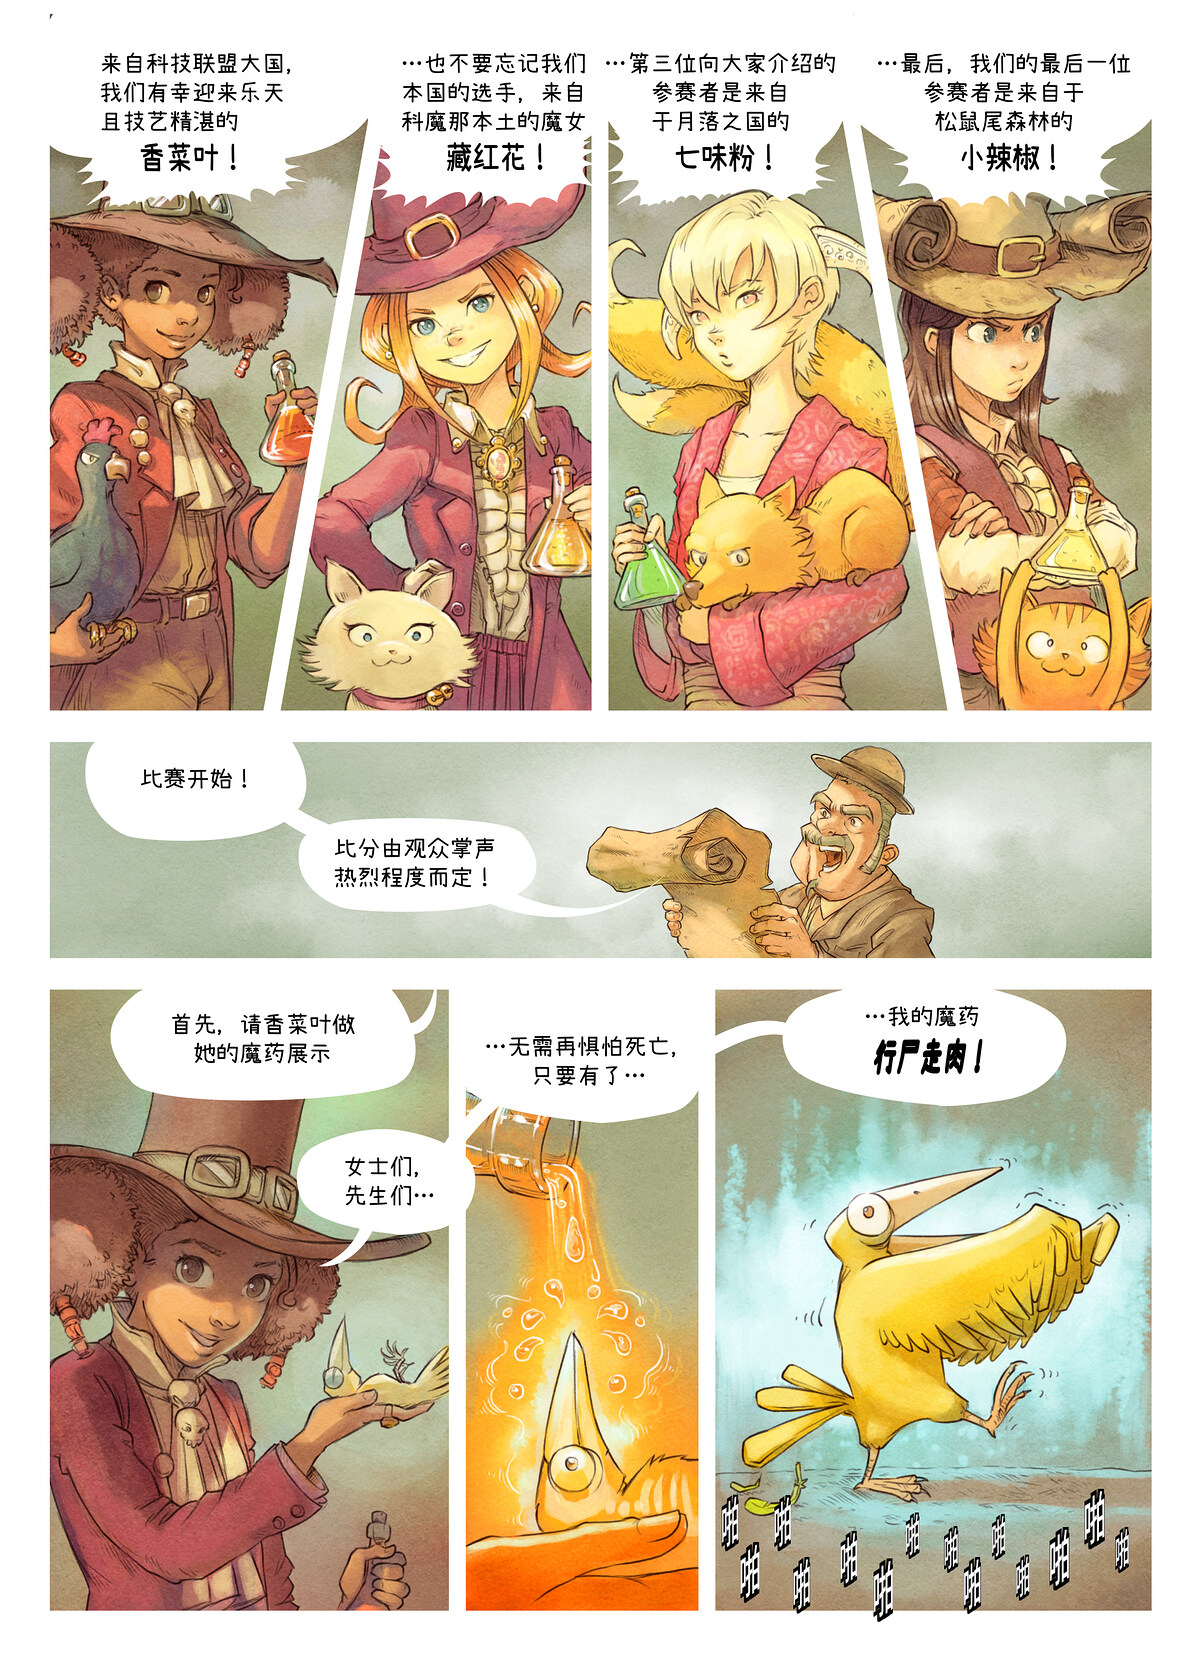 A webcomic page of Pepper&Carrot, 漫画全集 6 [cn], 页面 4